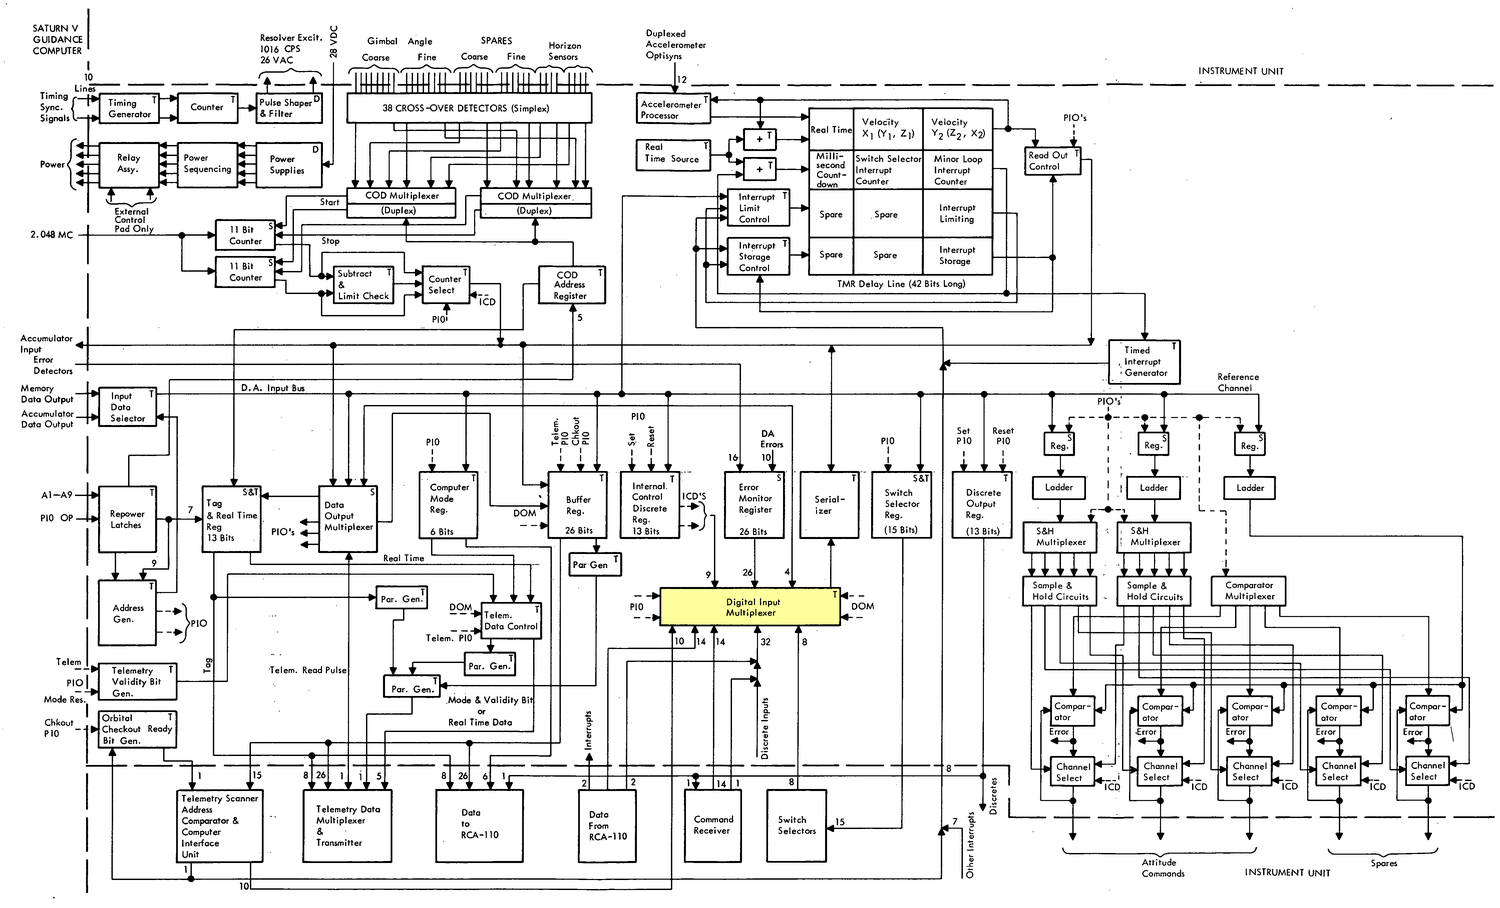 Block diagram from IBM Study Report.